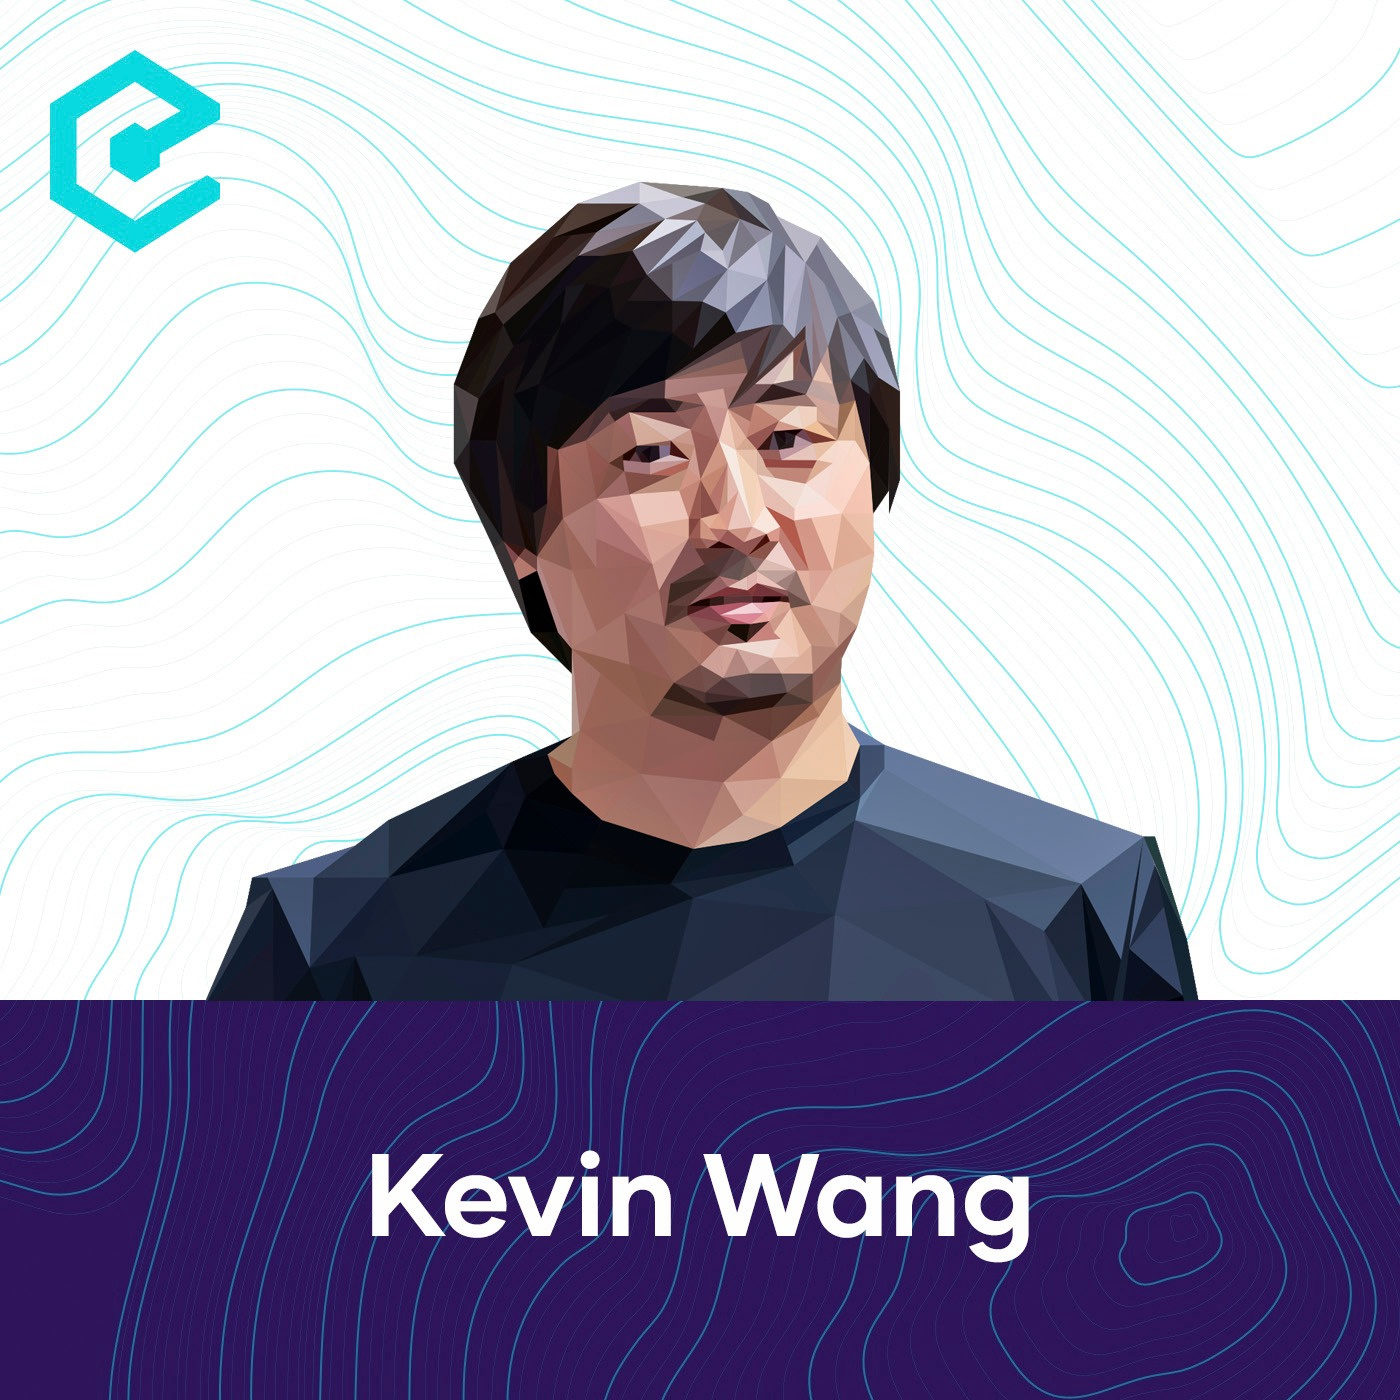 Kevin Wang: Nervos – Scaling Smart Contact Blokchains With Proof of Work and Generalized UTXO